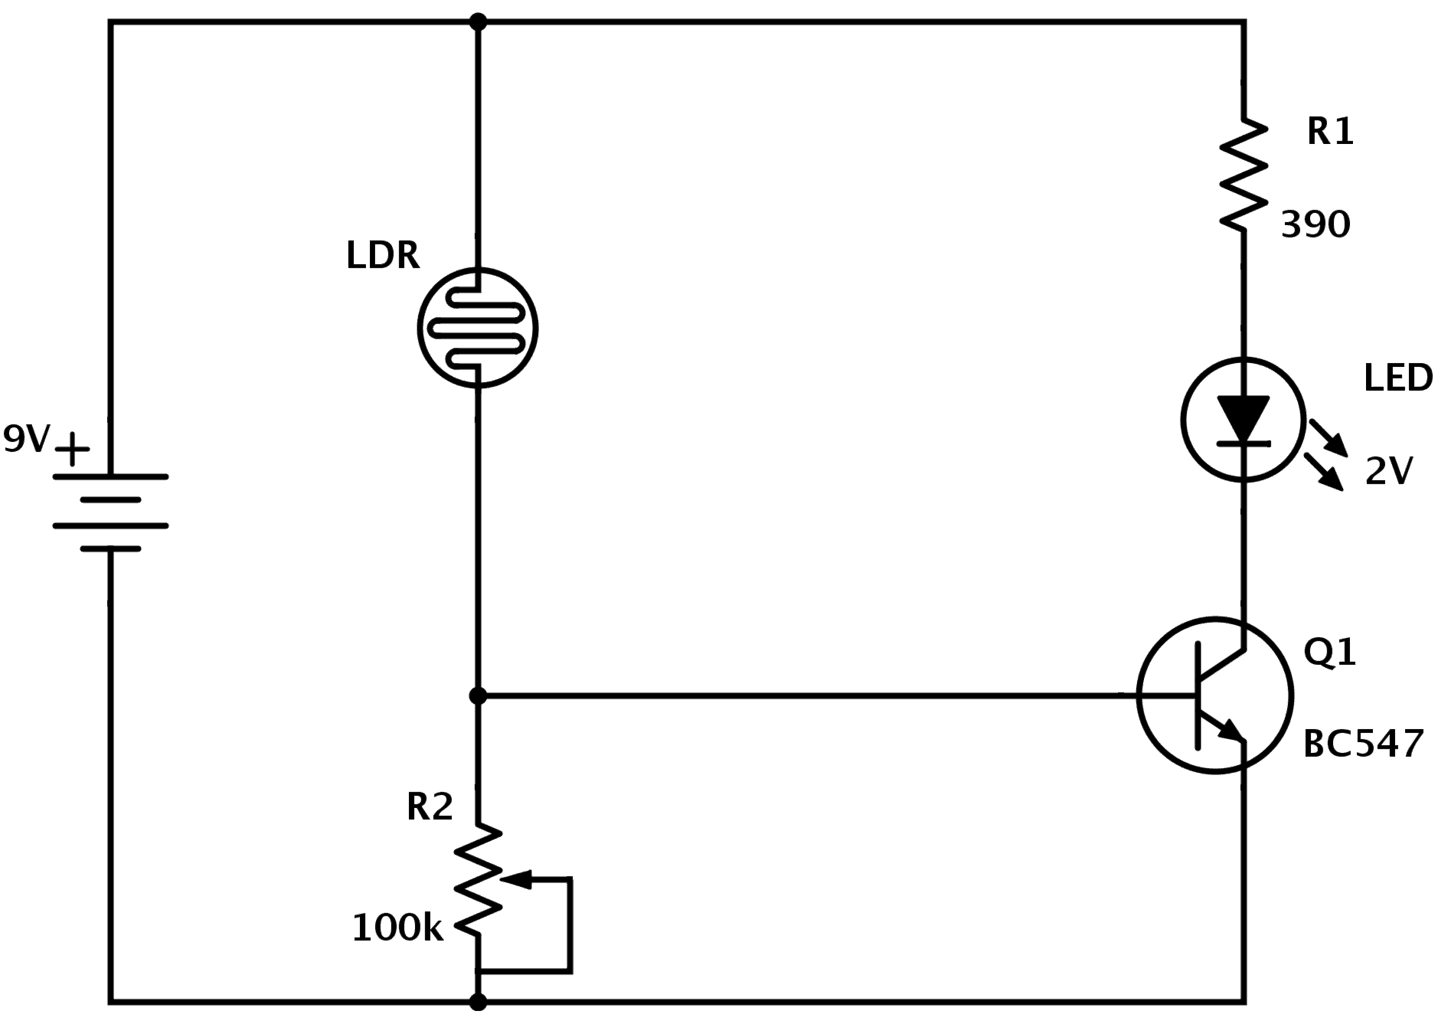 Circuit Diagram How To Read And Understand Any Schematic Fm Transmitter Stripboard Layout 2 Ldr